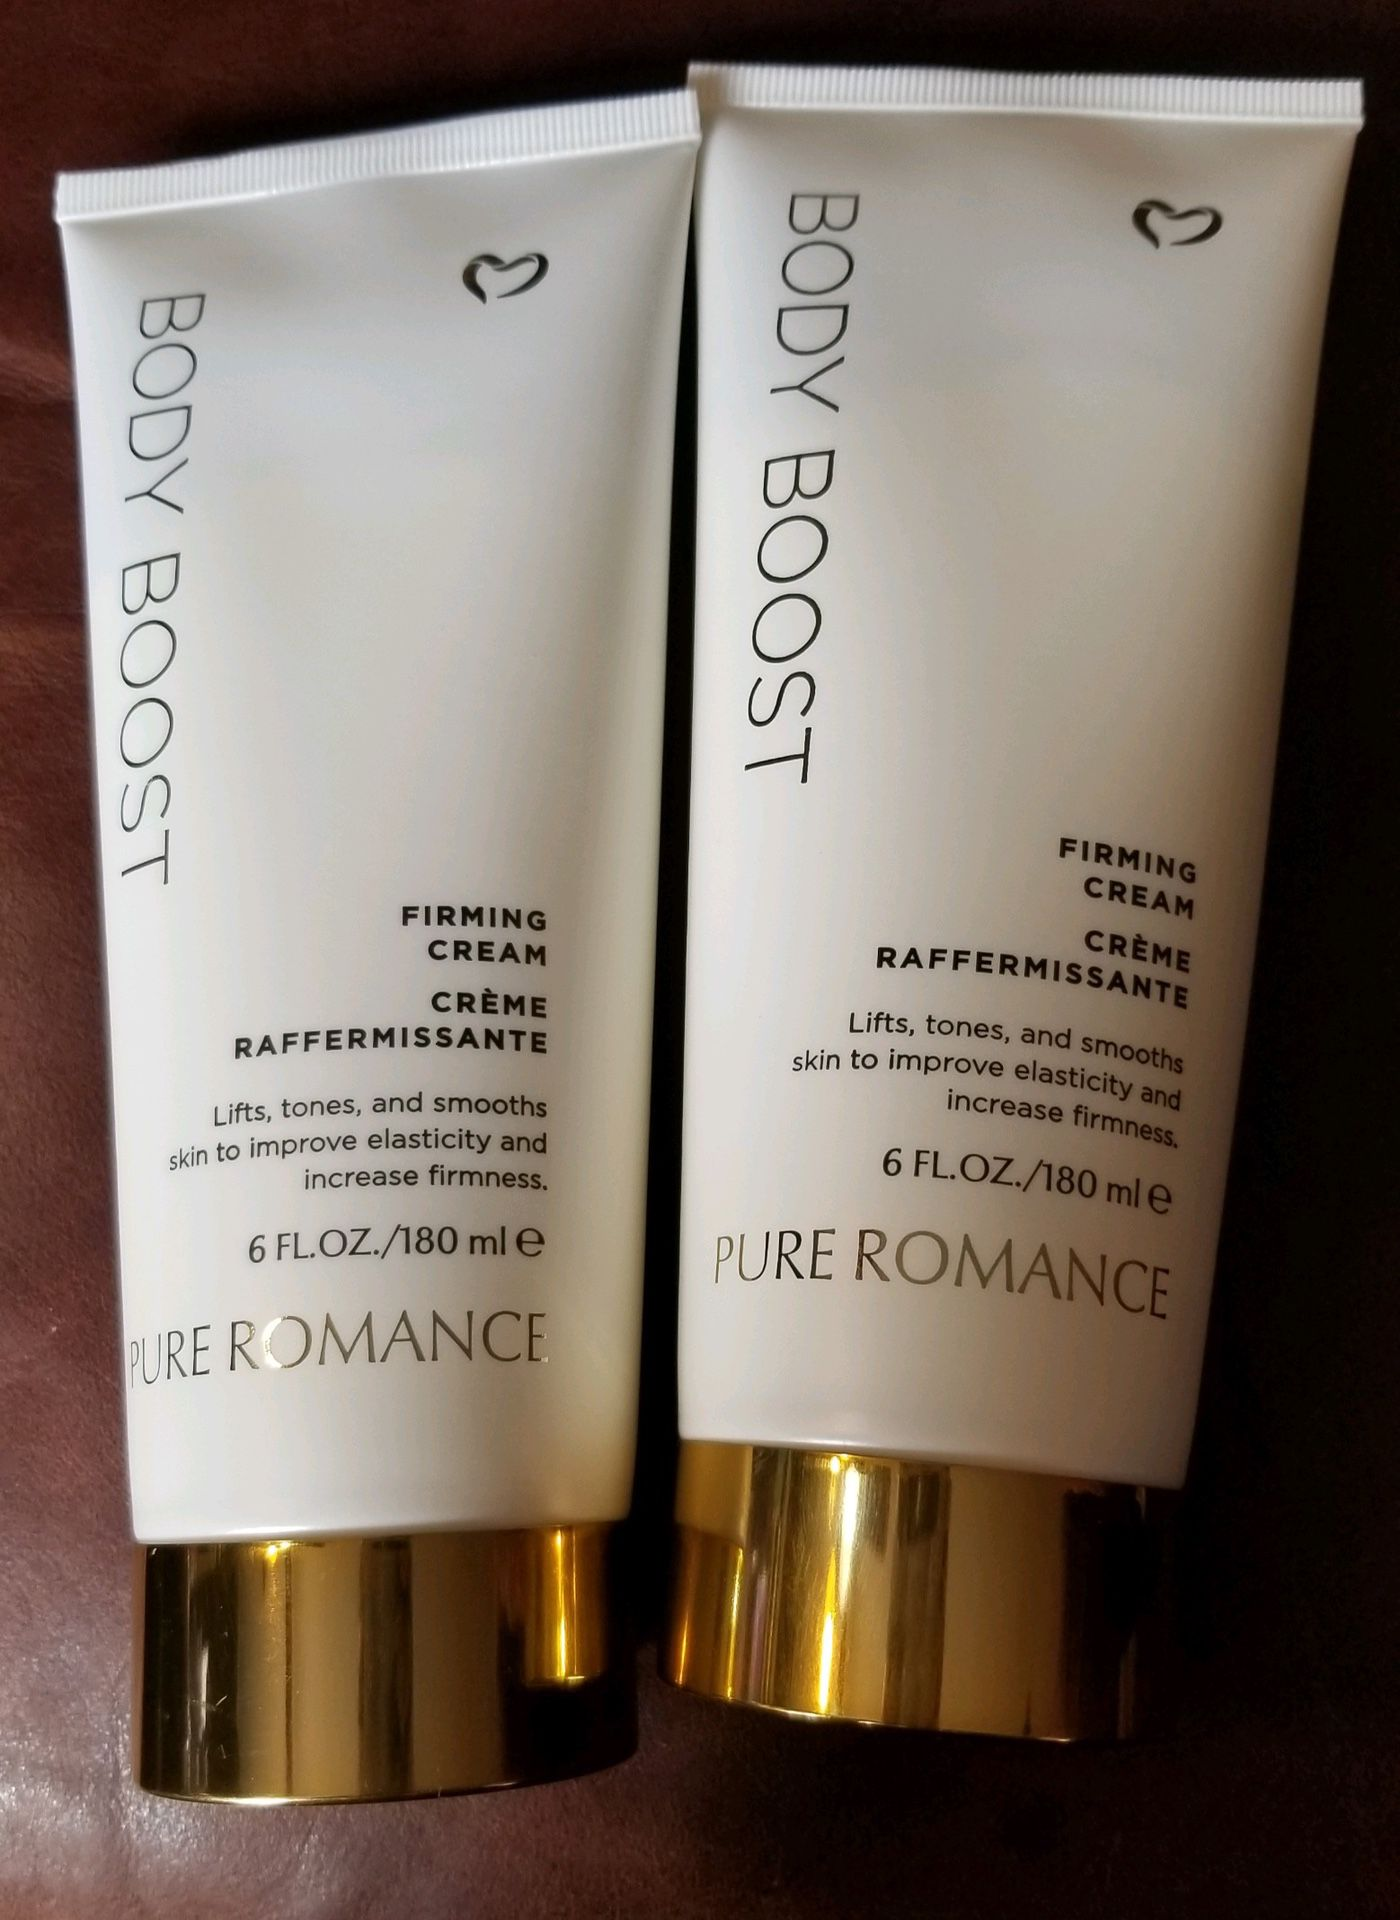 BRAND NEW NEVER OPENED Pure Romance products